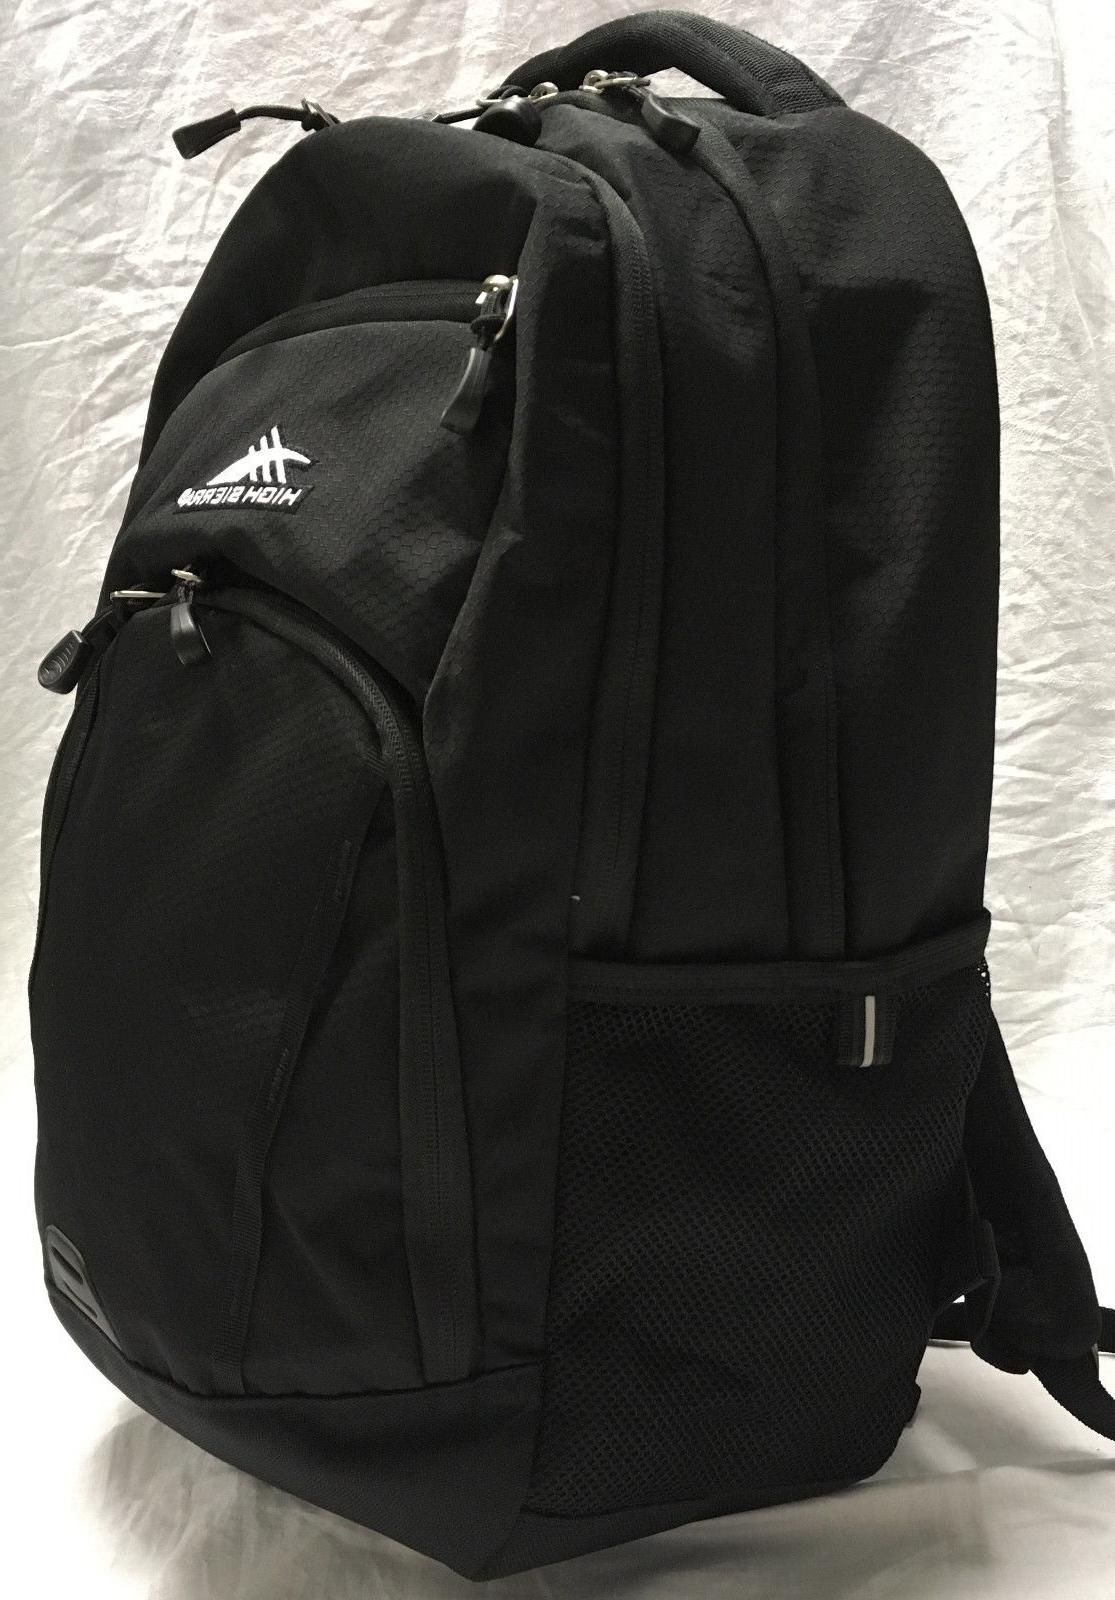 NEW High Sierra Laptop Backpack Everyday RIPRAP Black Organi